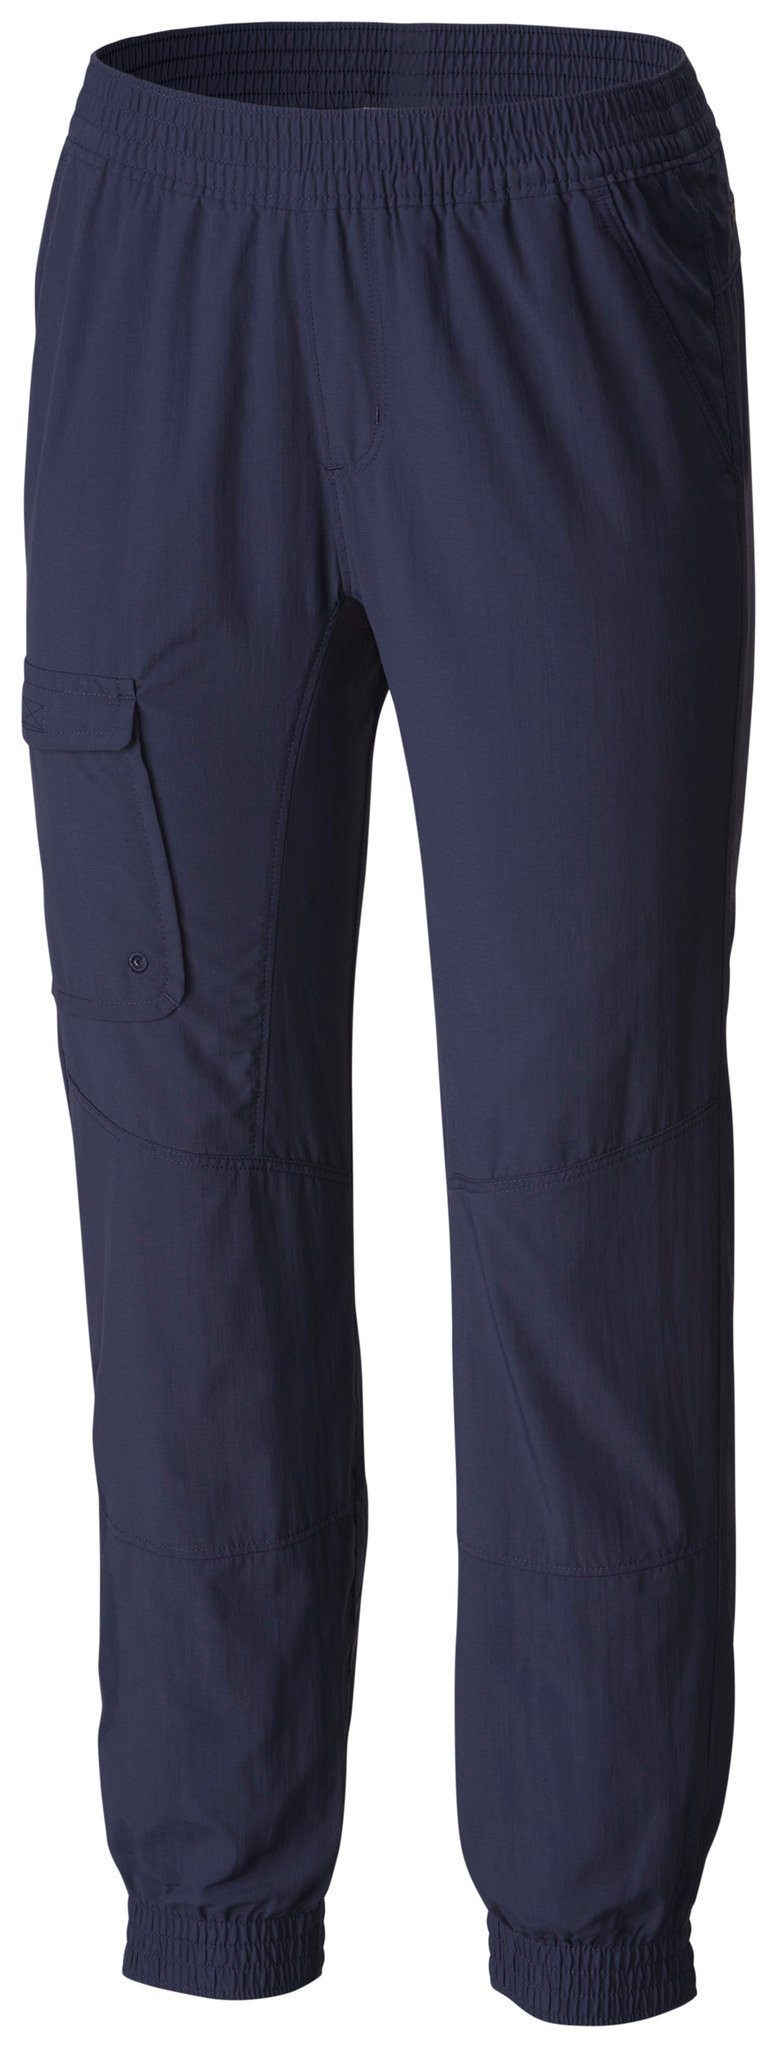 Columbia Hose »Silver Ridge Pull-On Banded Pant Youths«